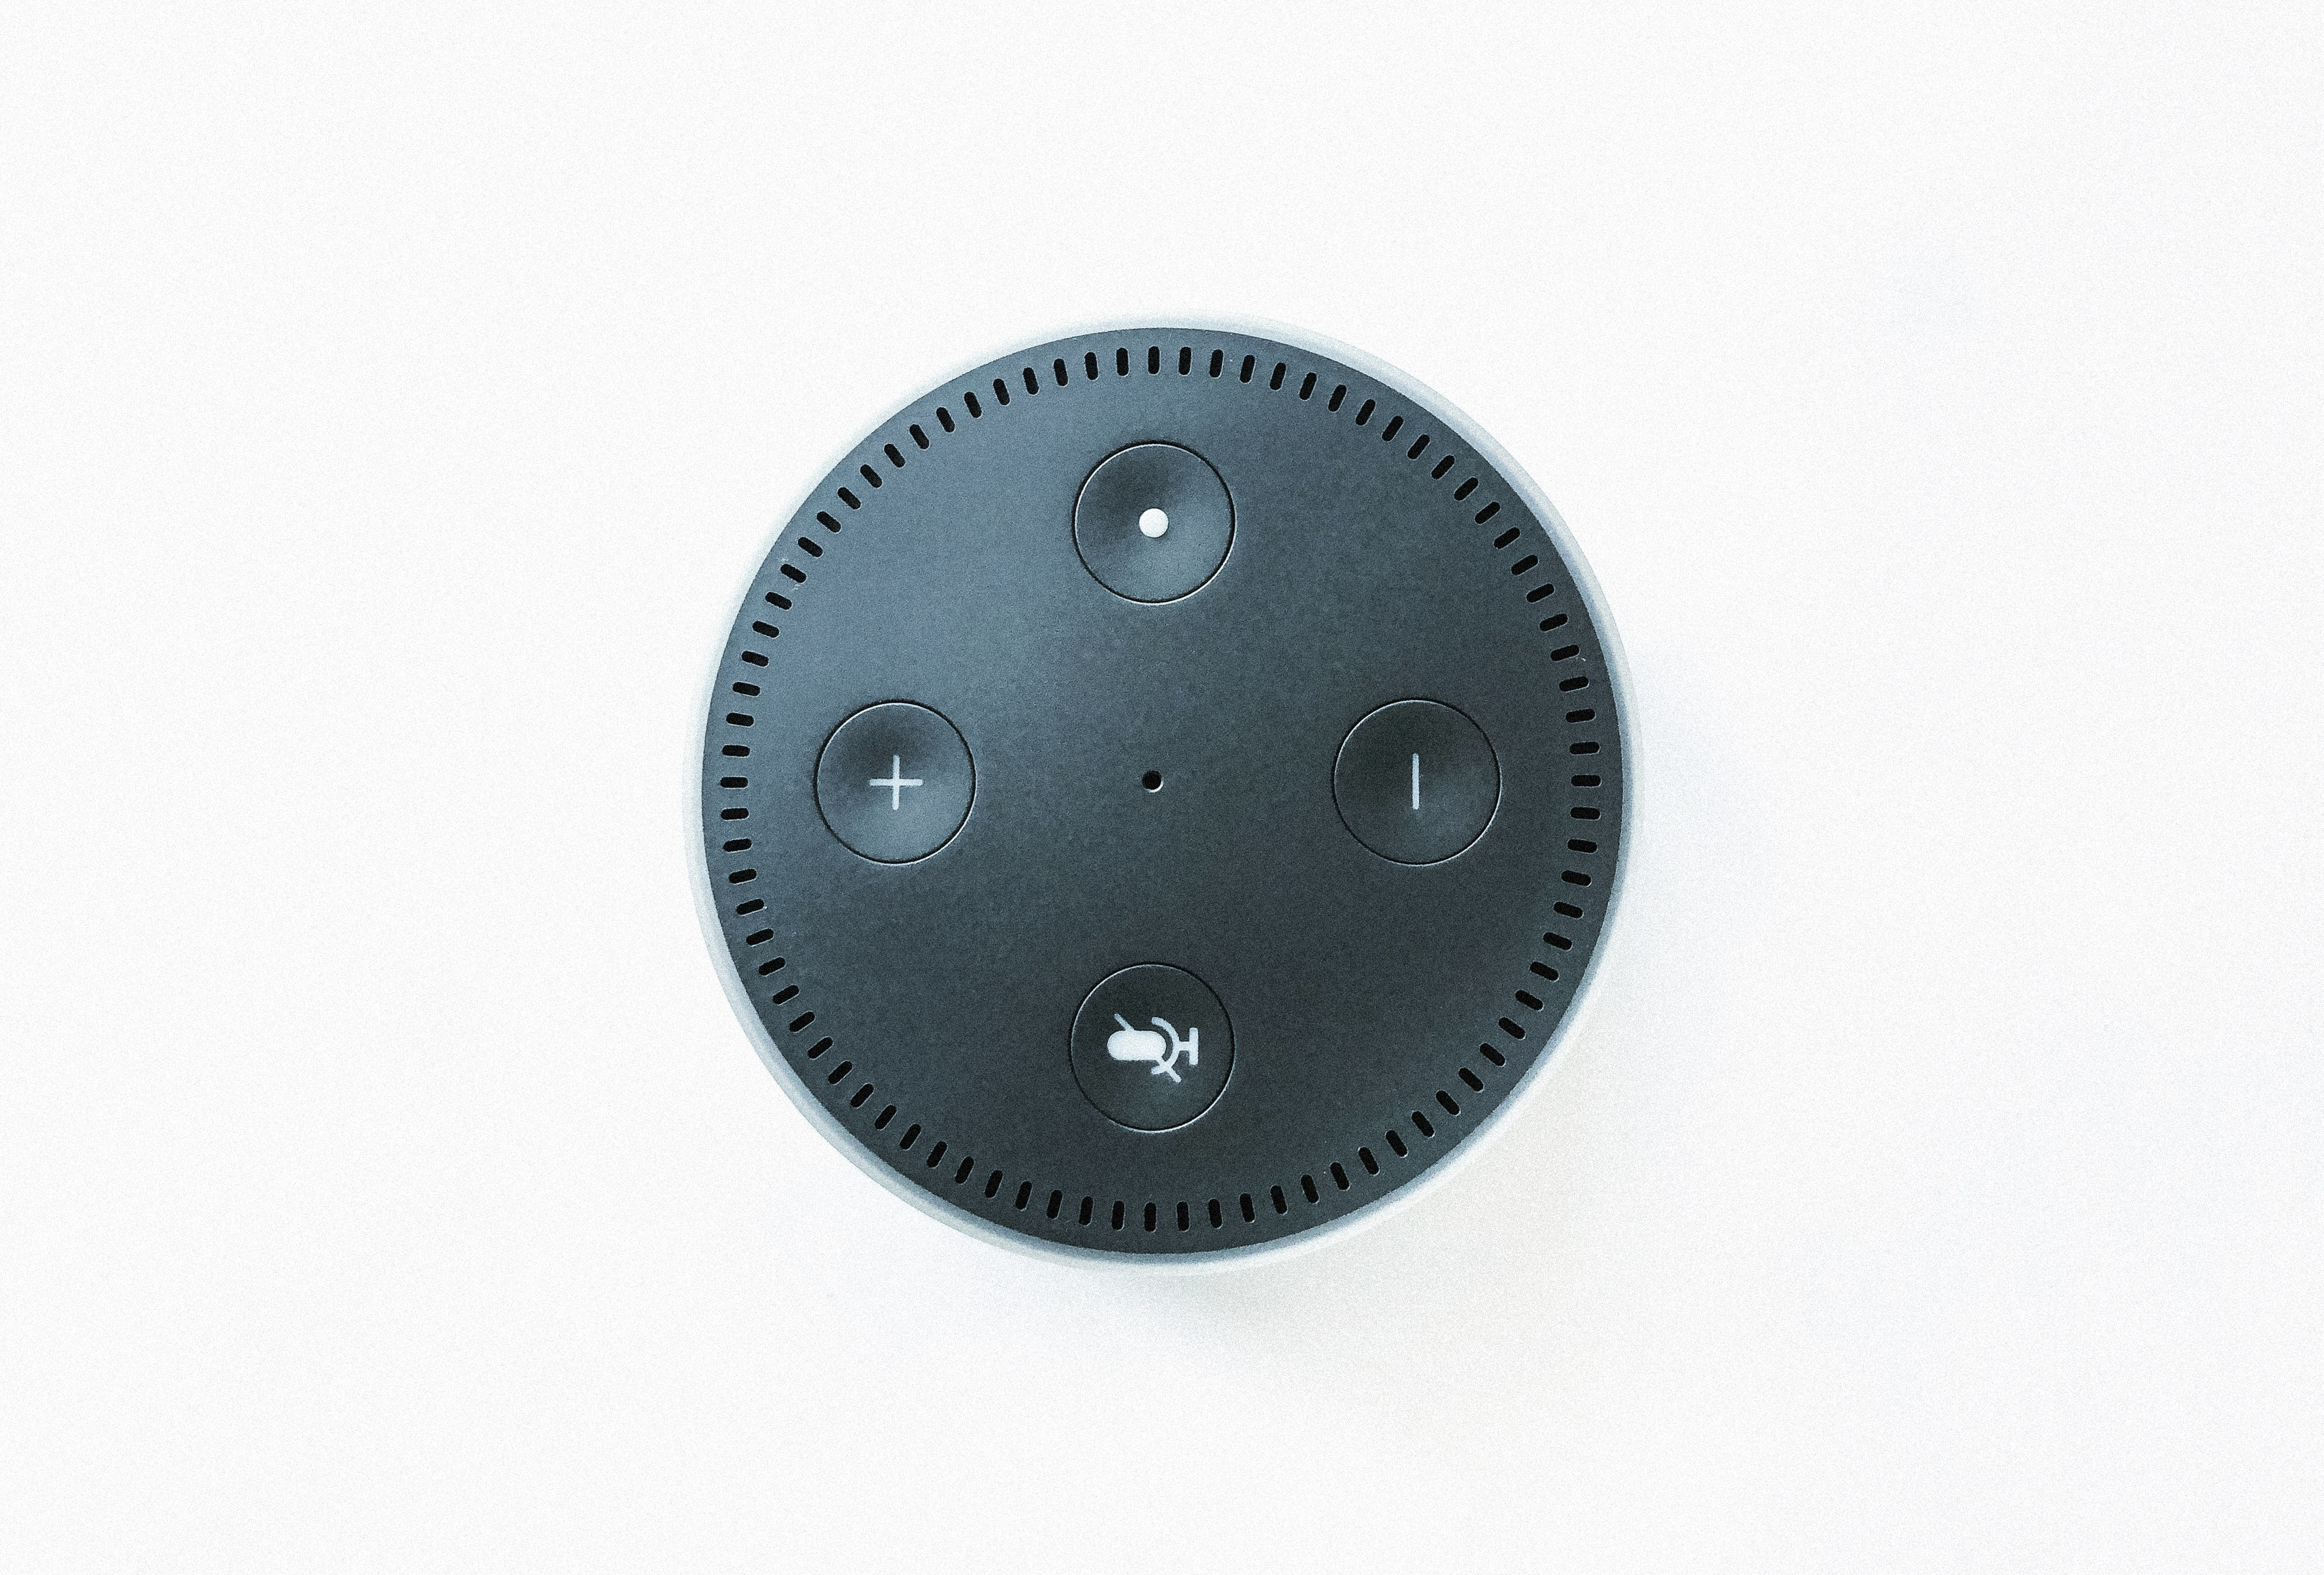 black Amazon echo dot speaker